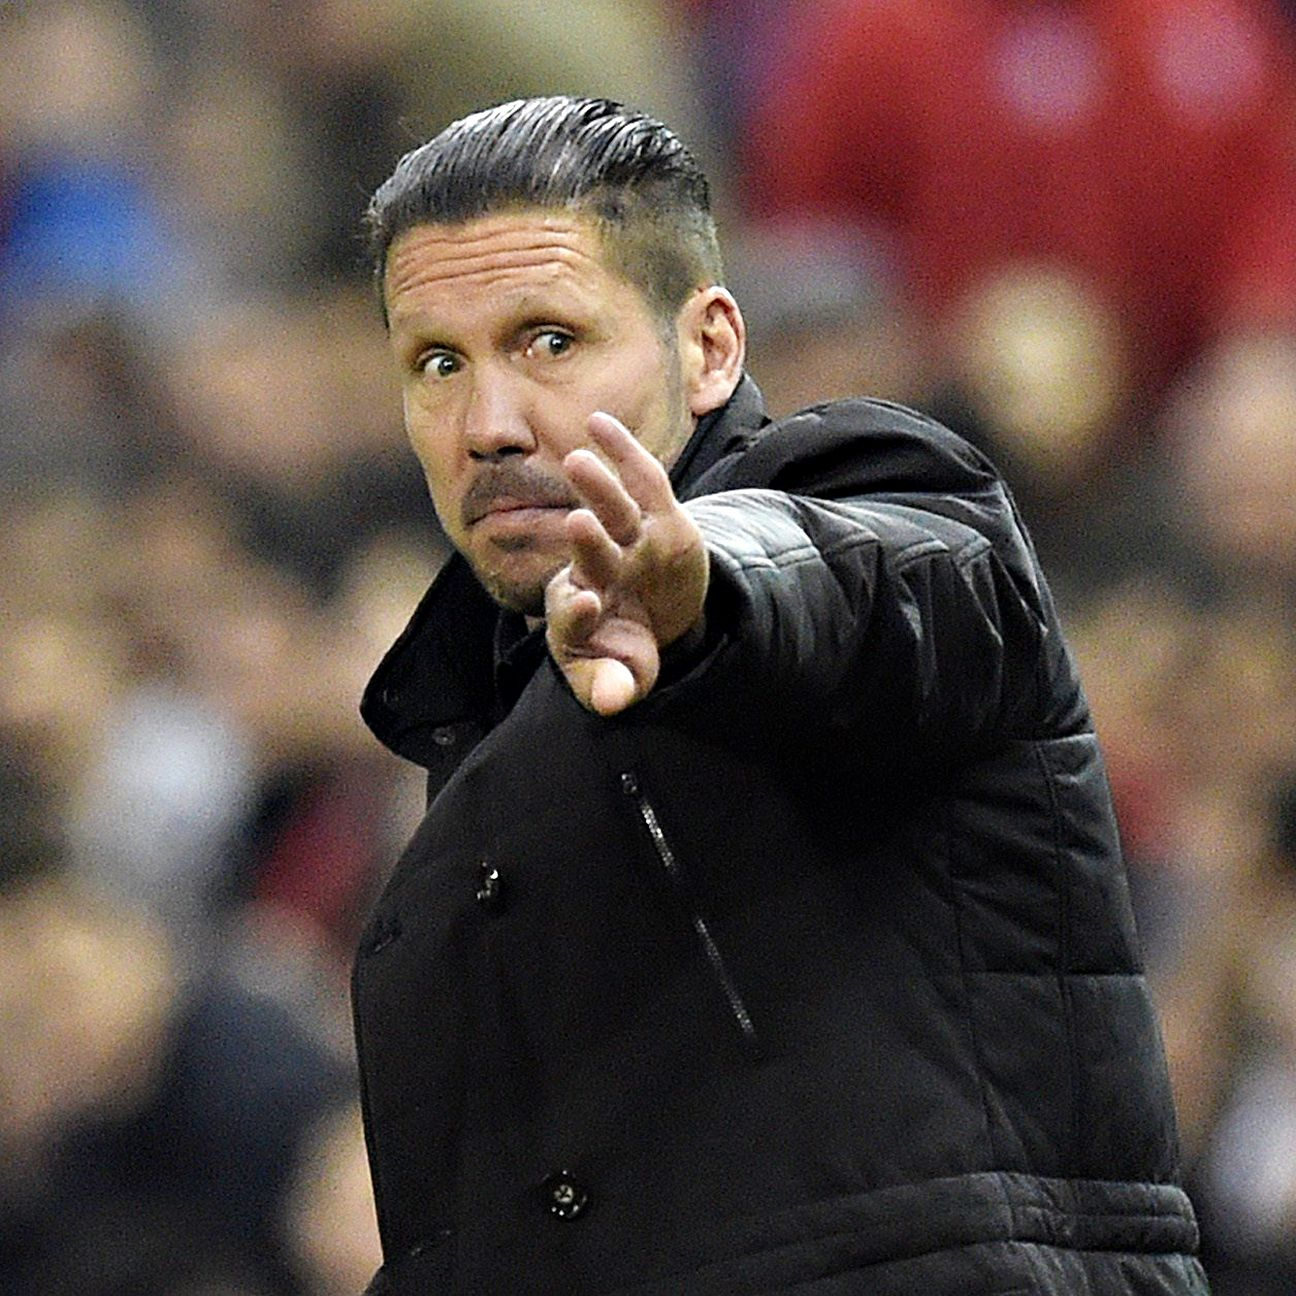 It remains to be seen if Atletico boss Diego Simeone stays with a 4-3-3 formation against Eibar, or reverts back to a 4-4-2.